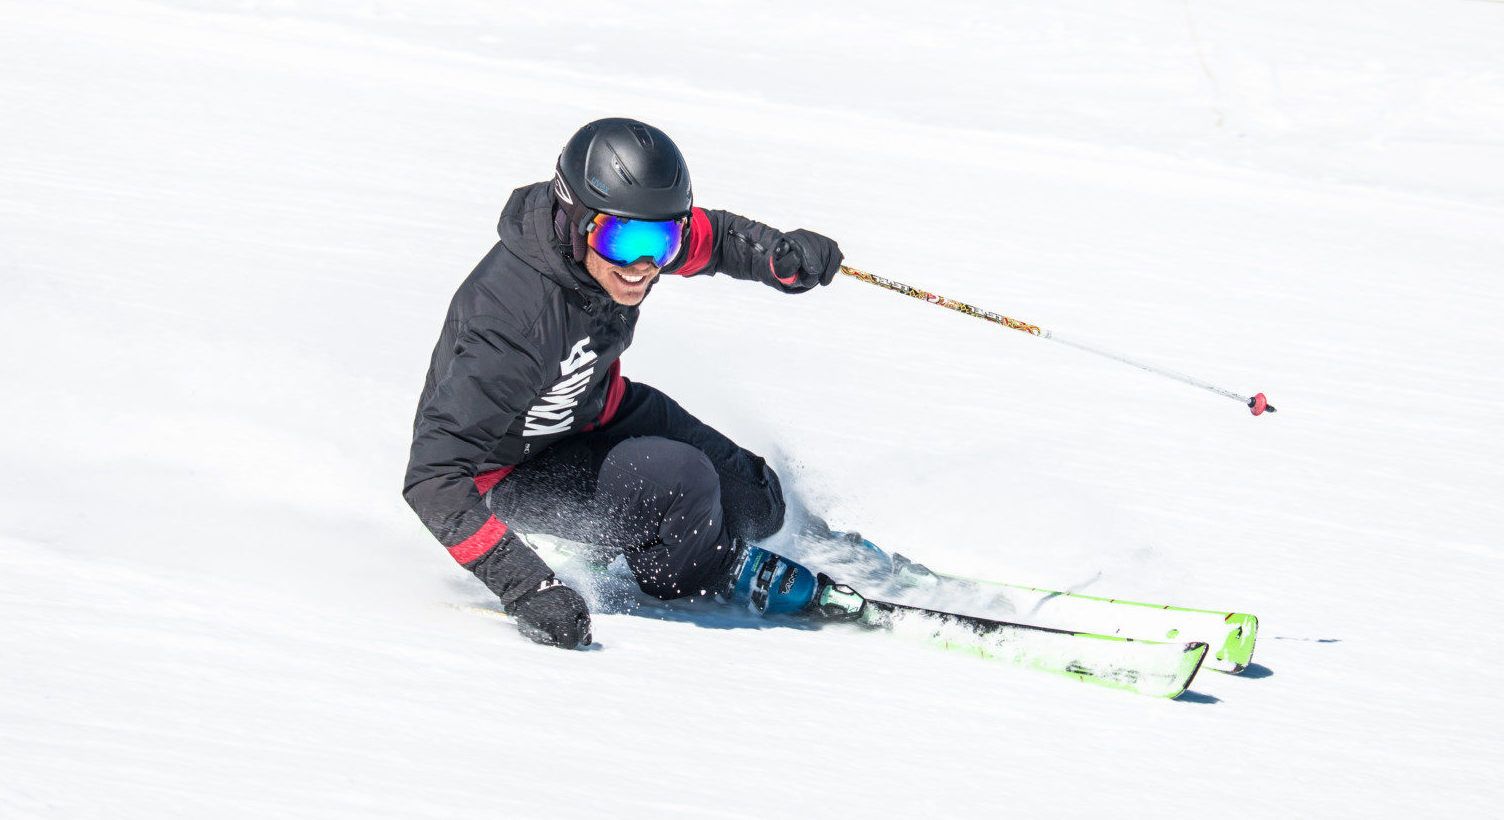 Ski instructor training courses europe